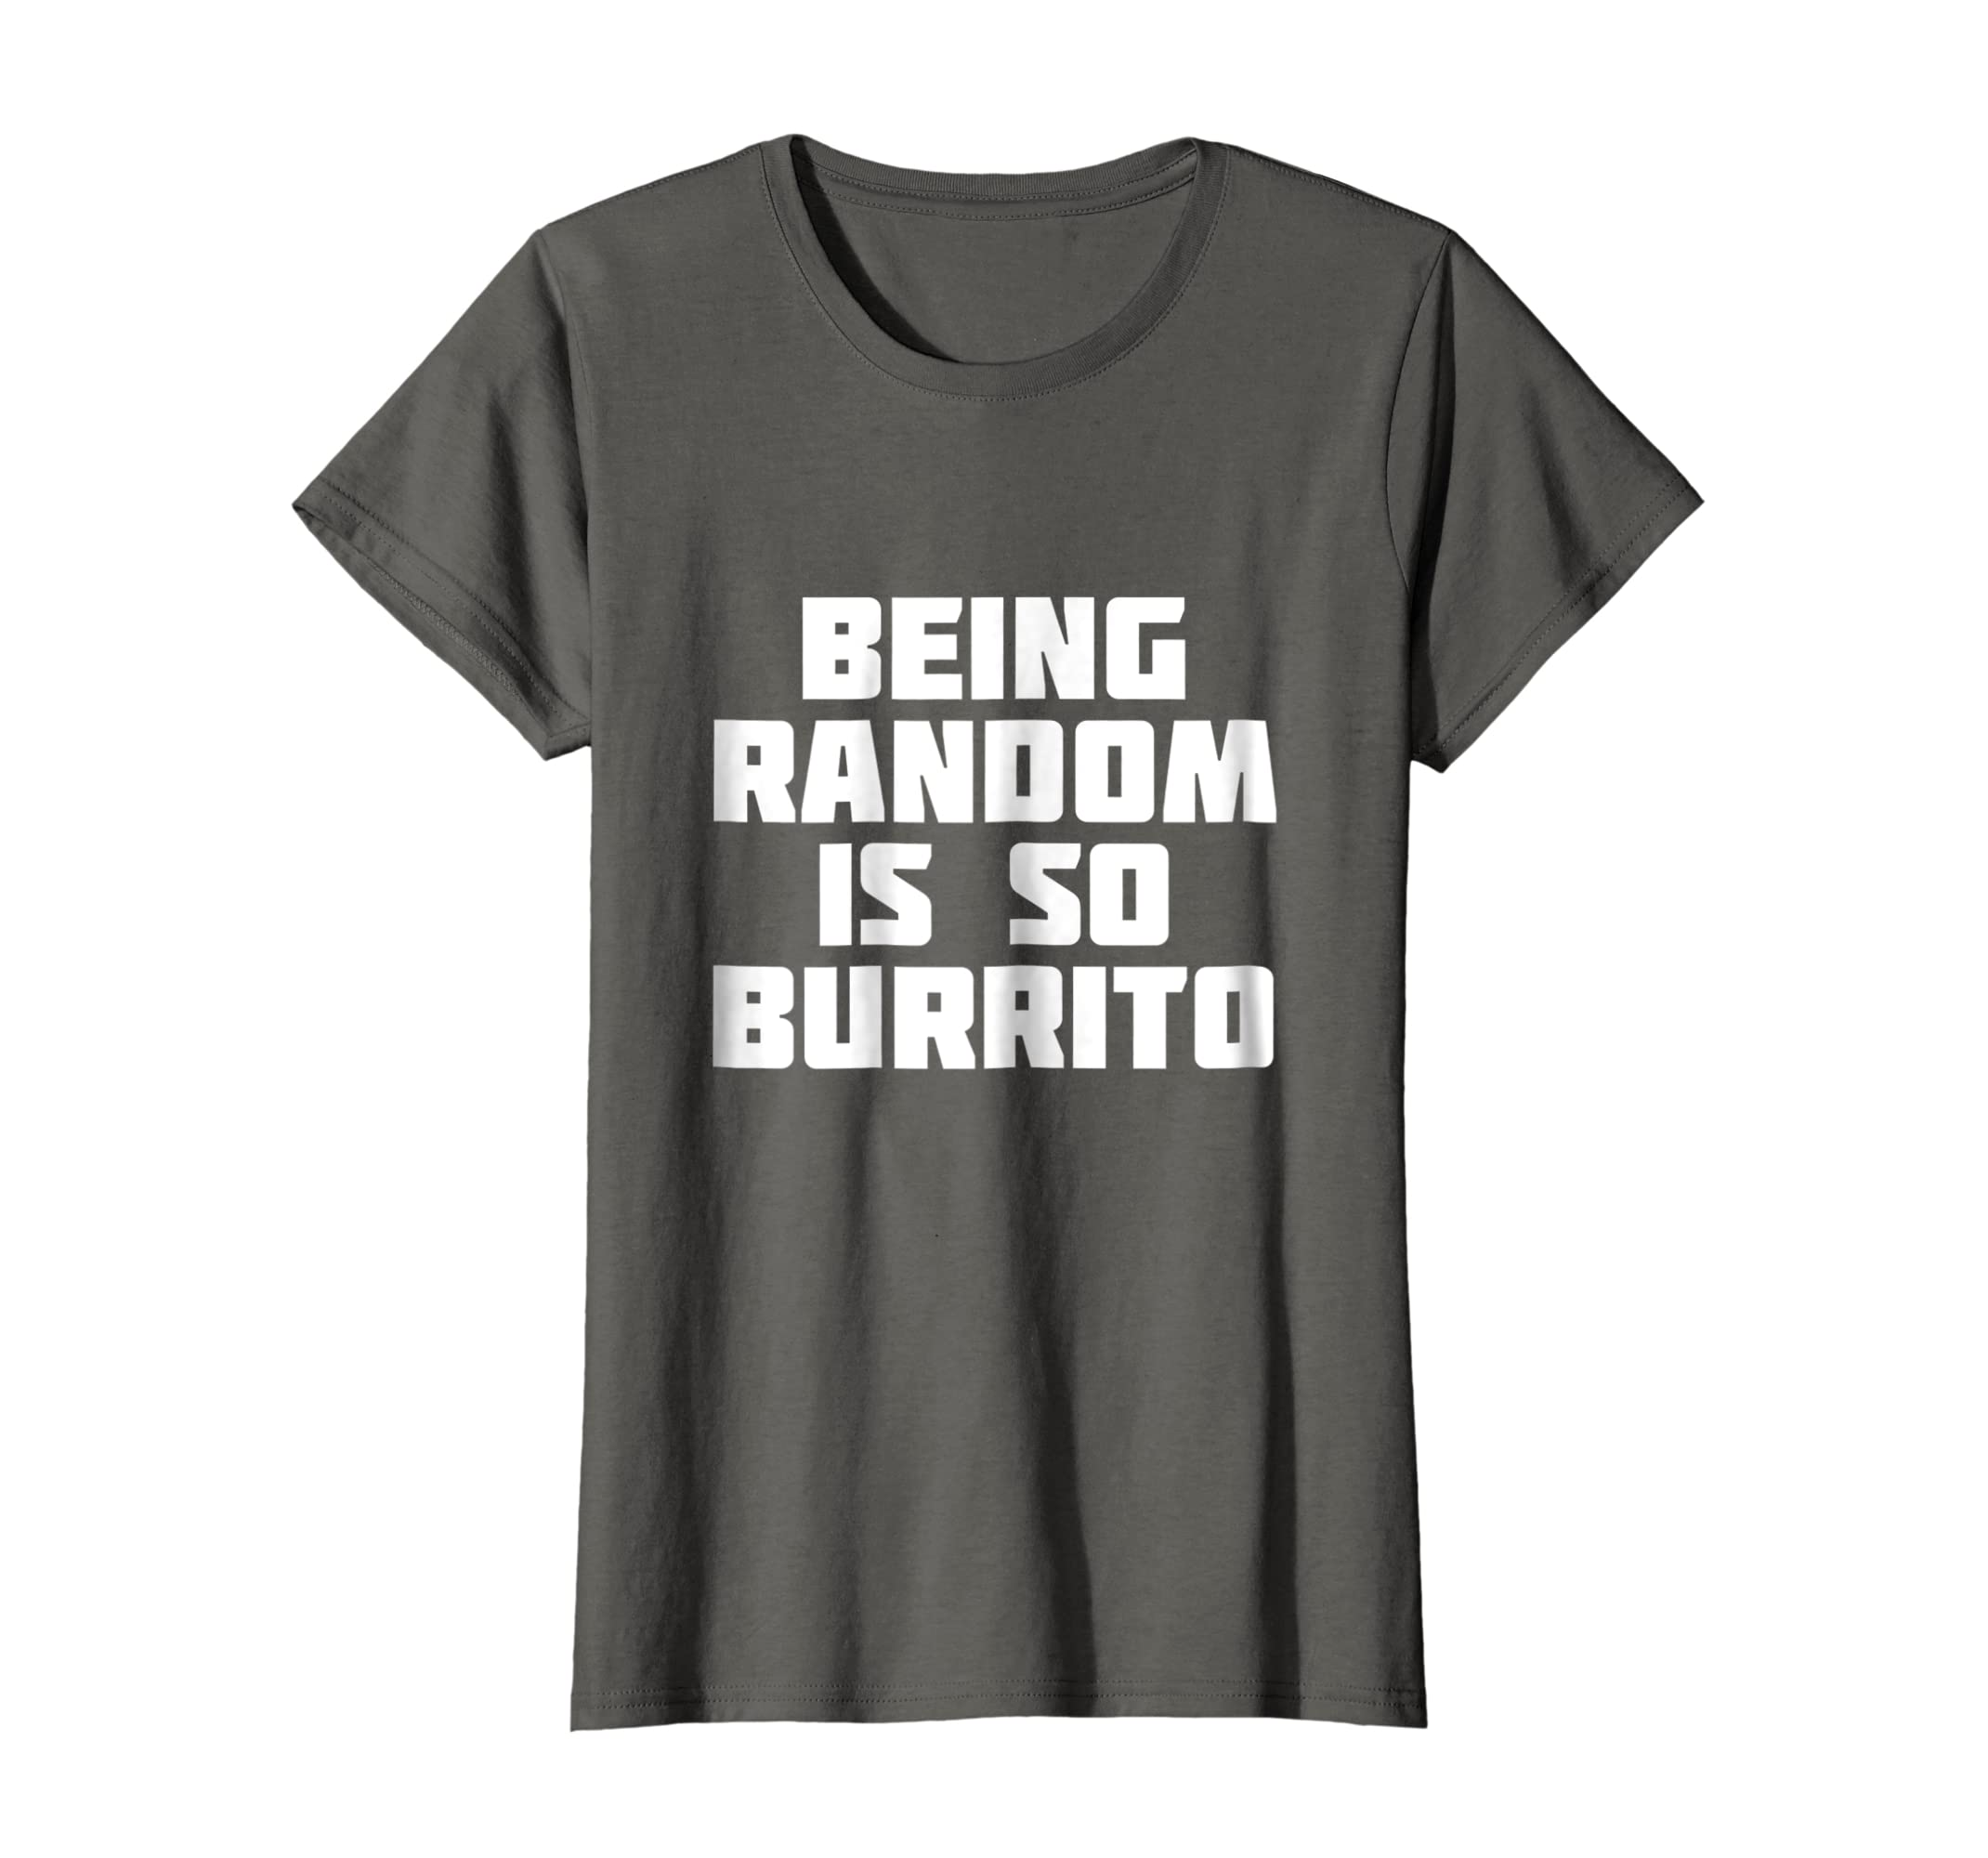 3a4413a5 Amazon.com: Being Random Is So Burrito | Funny Sarcastic T-Shirt: Clothing